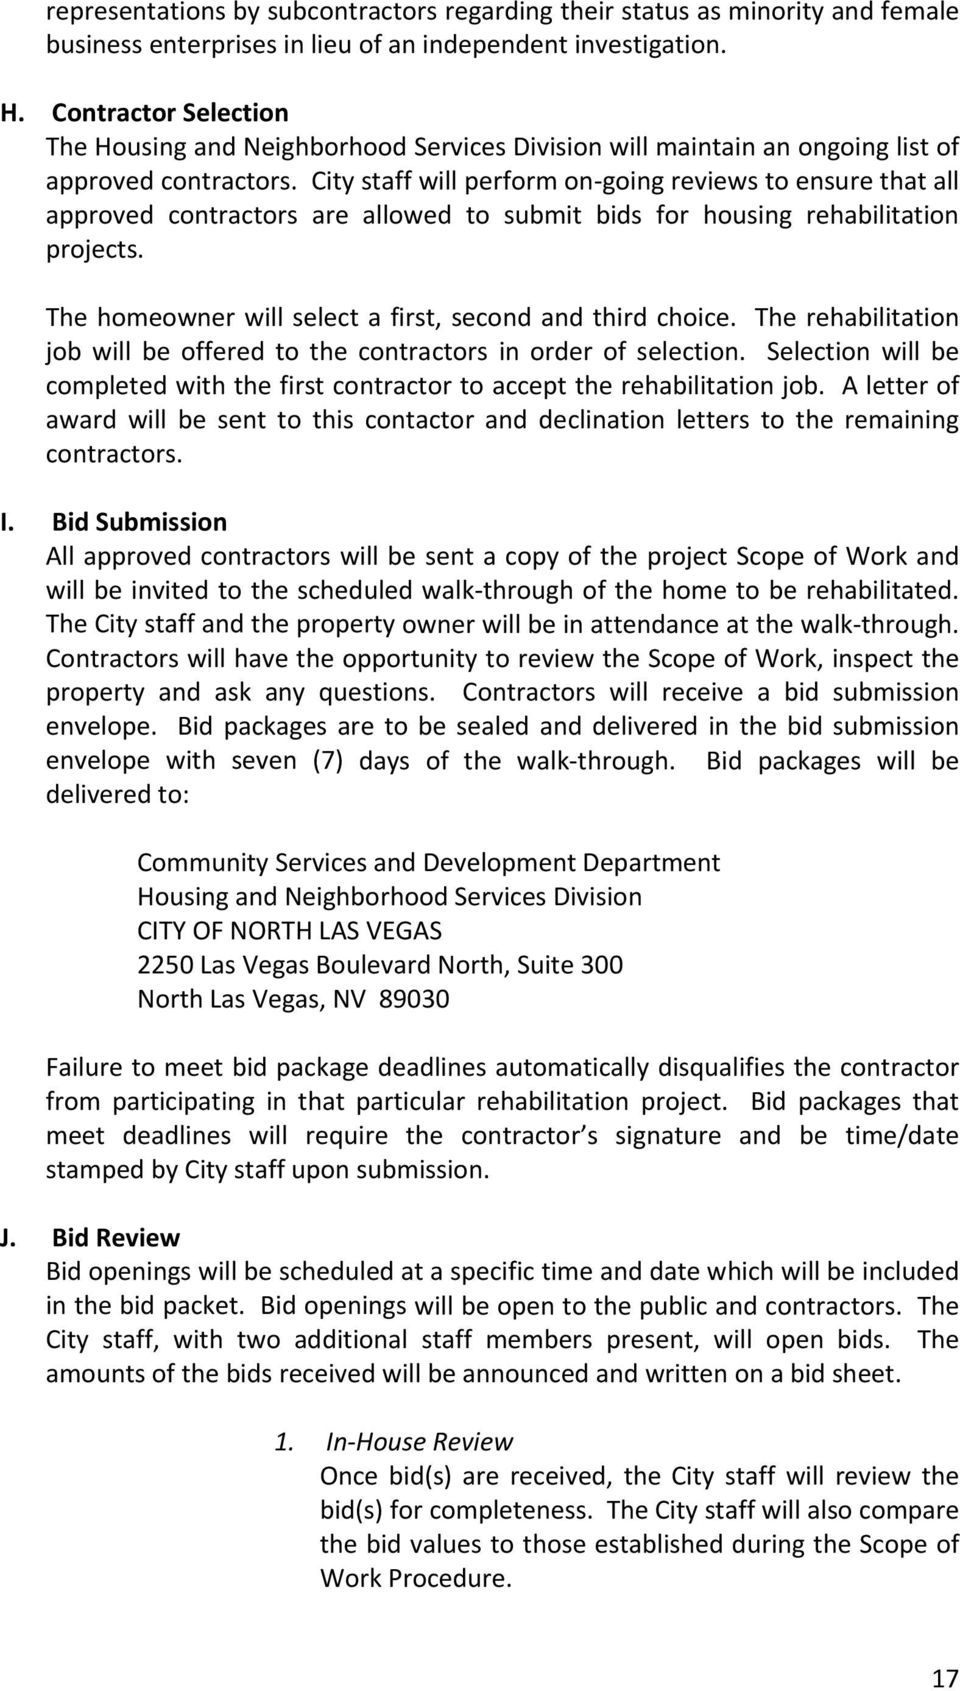 City staff will perform on going reviews to ensure that all approved contractors are allowed to submit bids for housing rehabilitation projects.